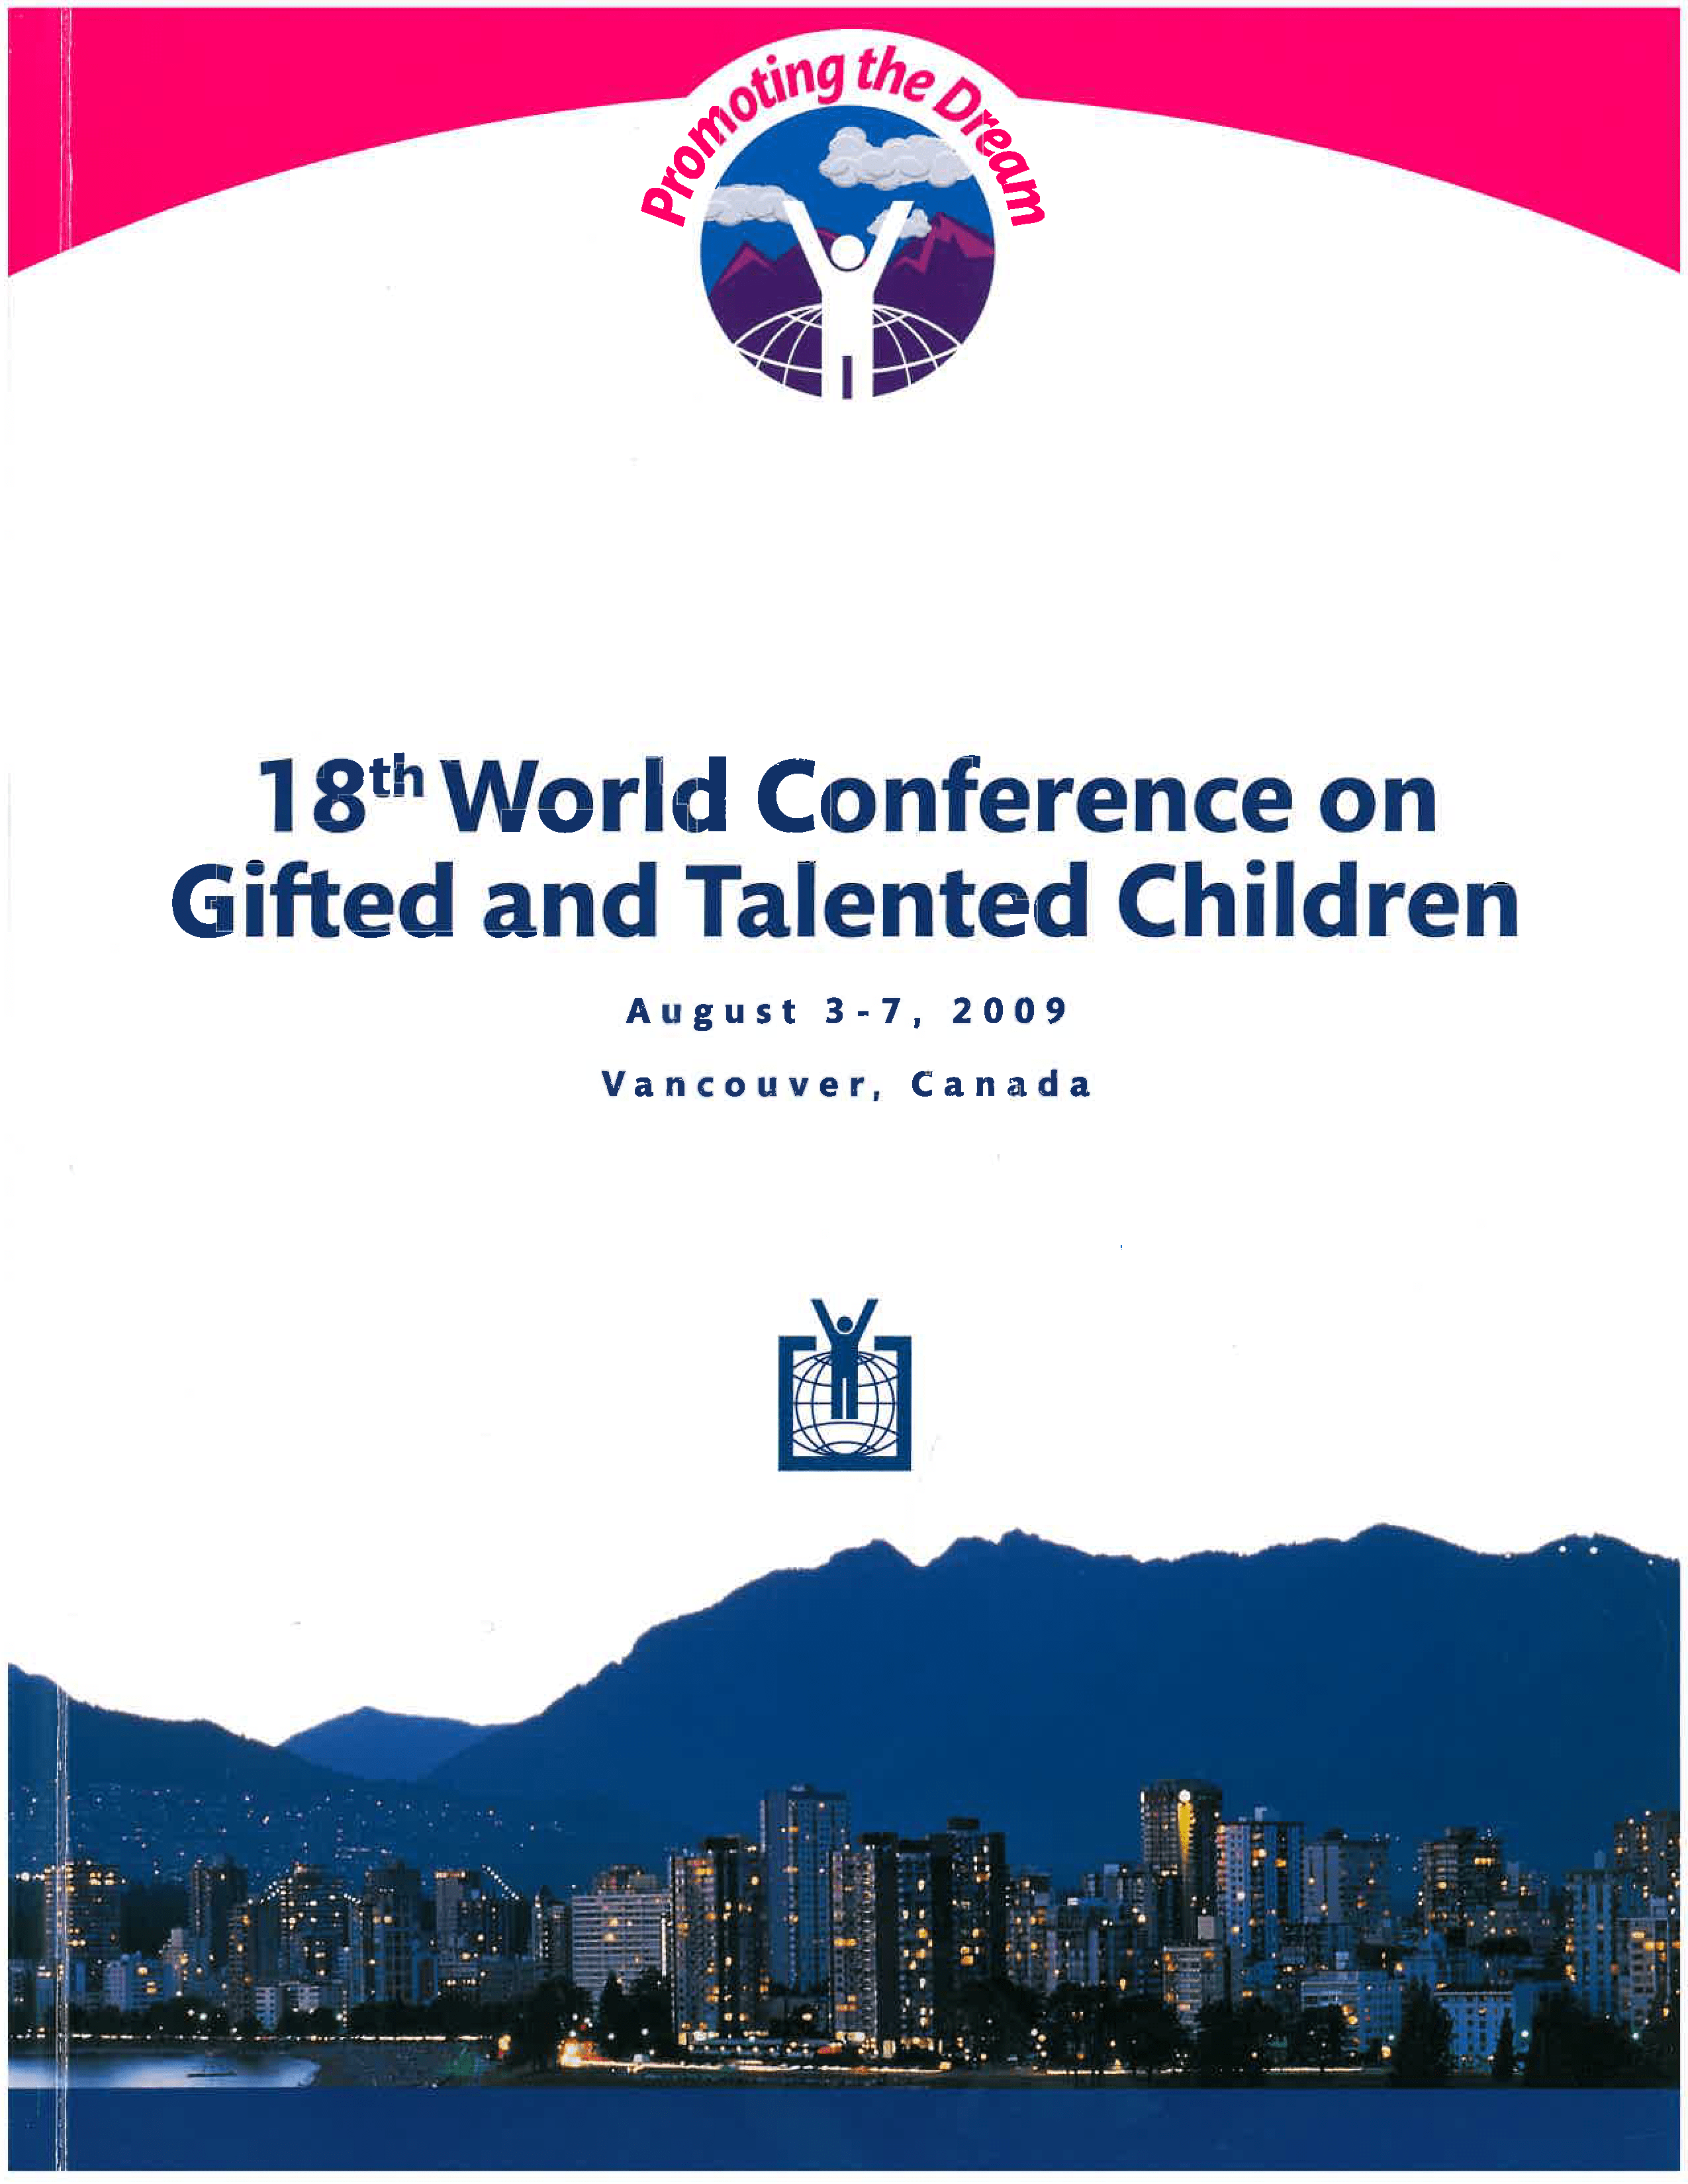 2009 World Conference Program Cover Vancouver Canada